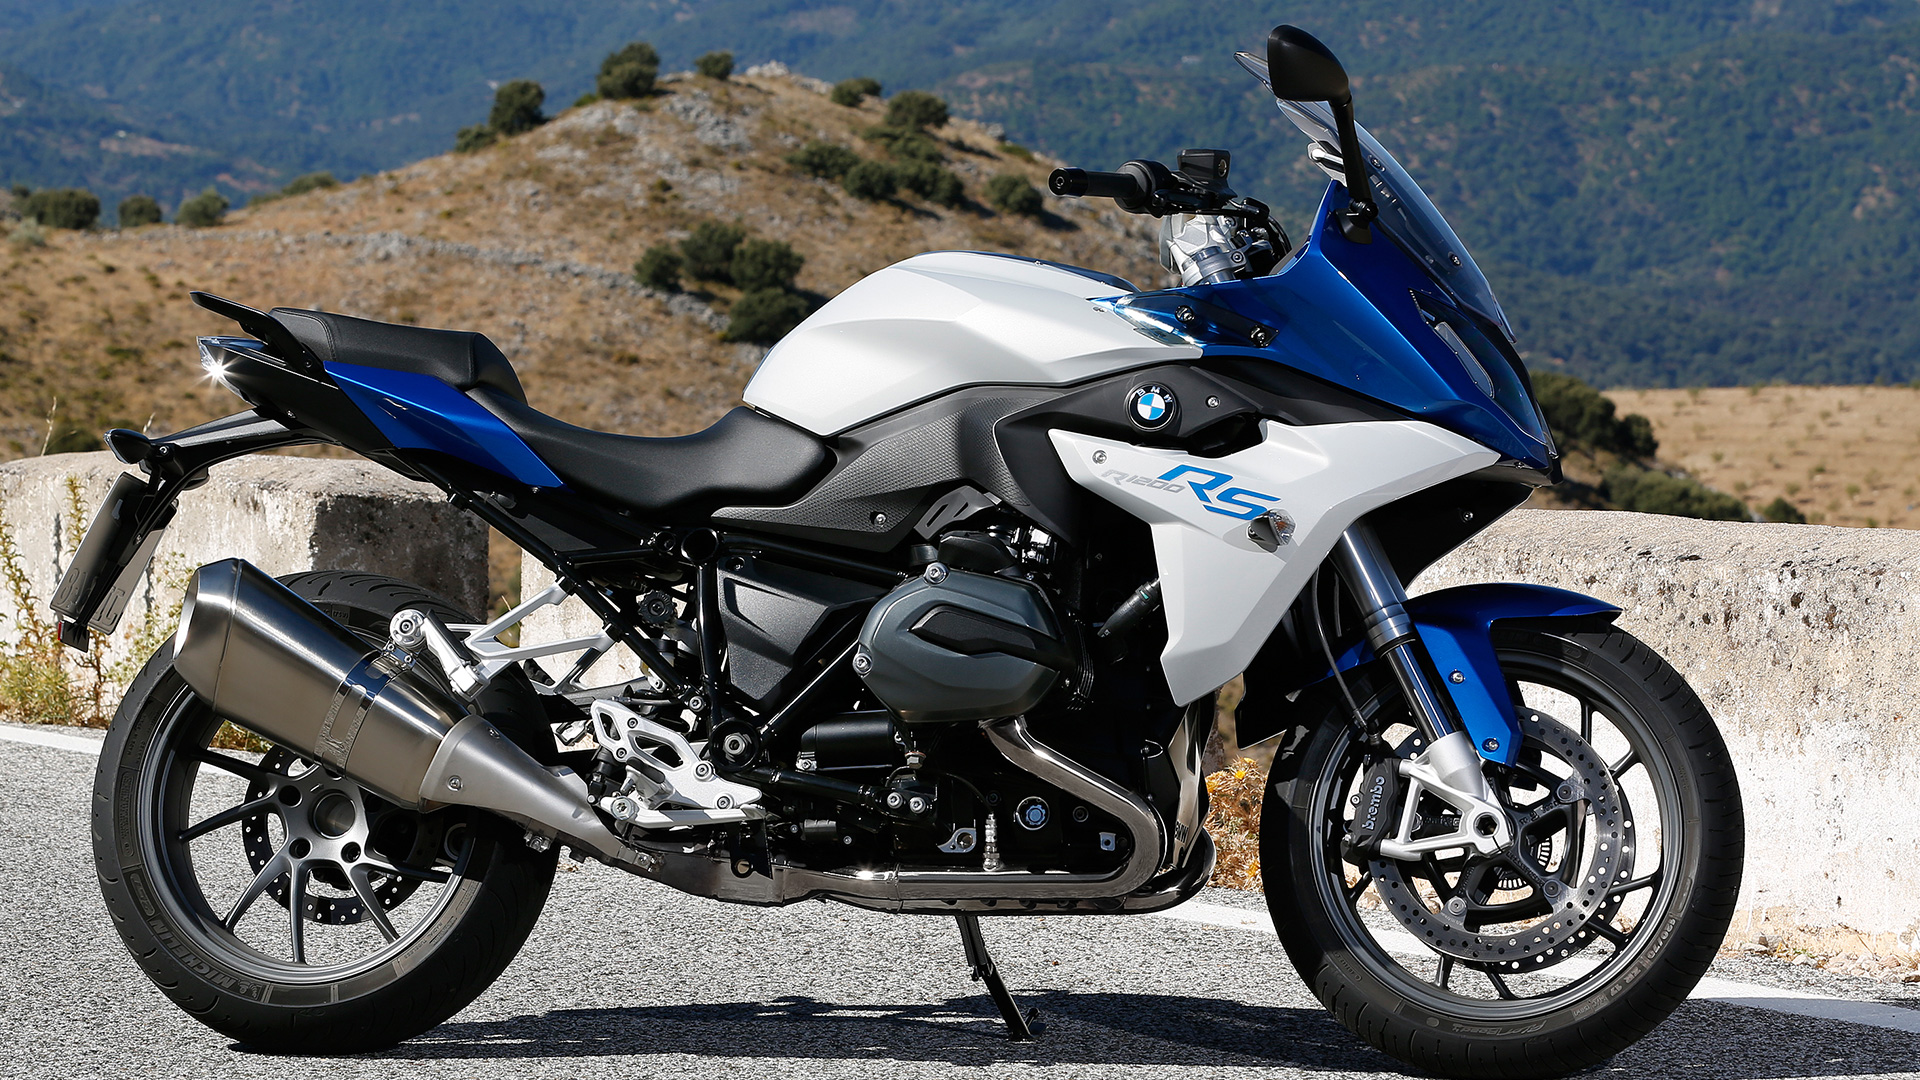 Bmw R 1200 2017 Rs Price Mileage Reviews